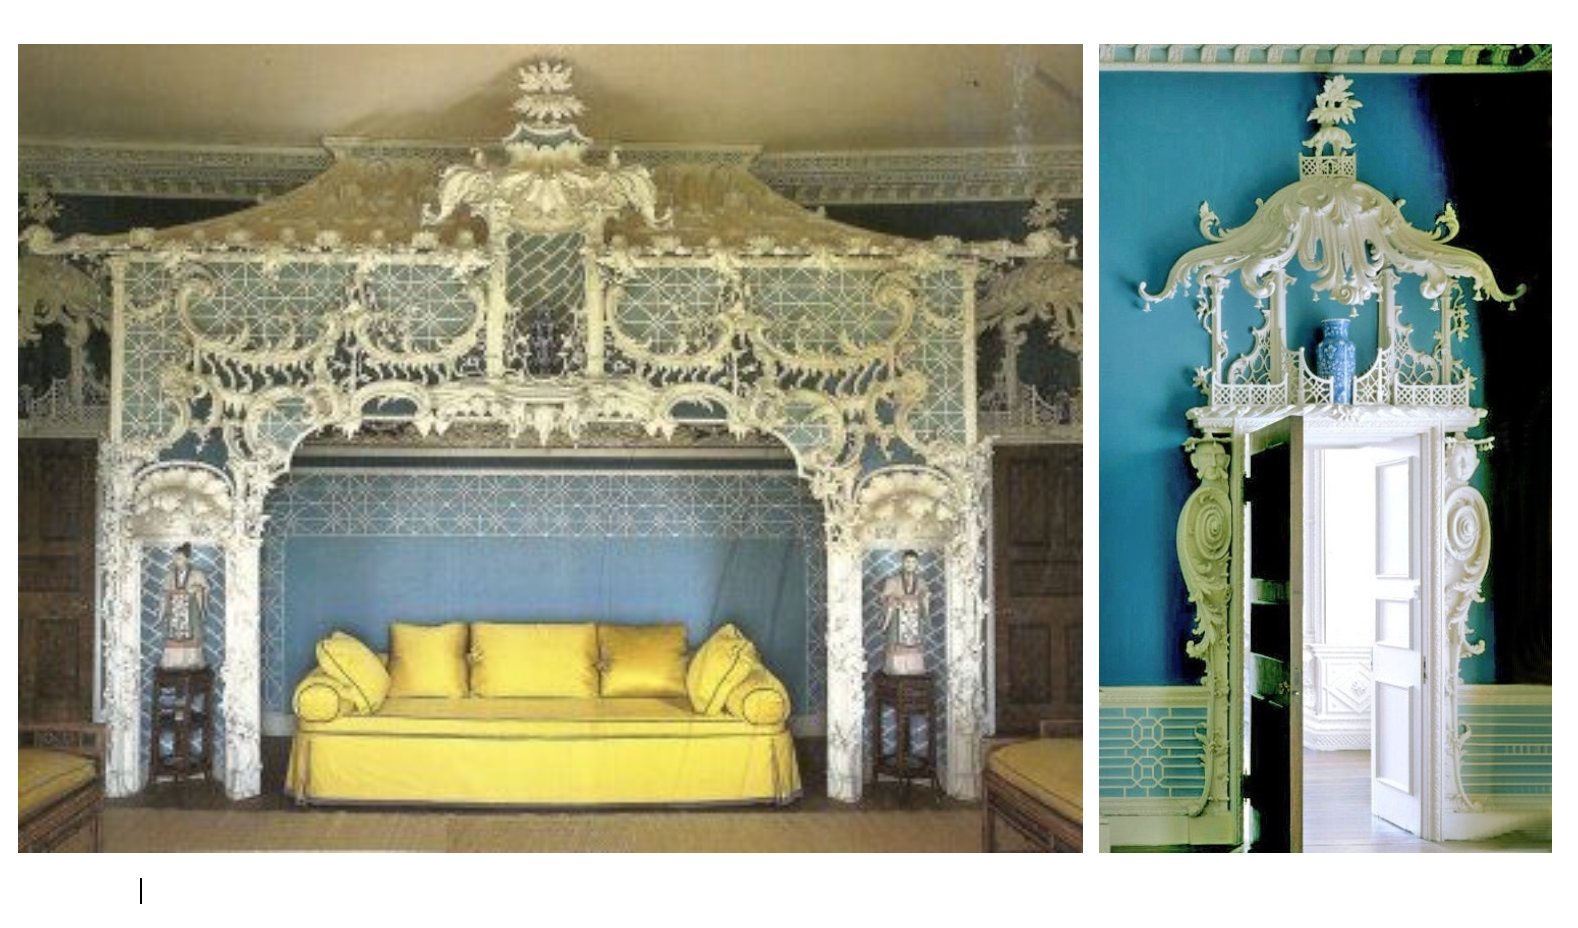 The Chinese Room in Claydon House is the most elaborate Chinoiserie interior surviving in England; designed in 1769 by Luke Lightfoot.